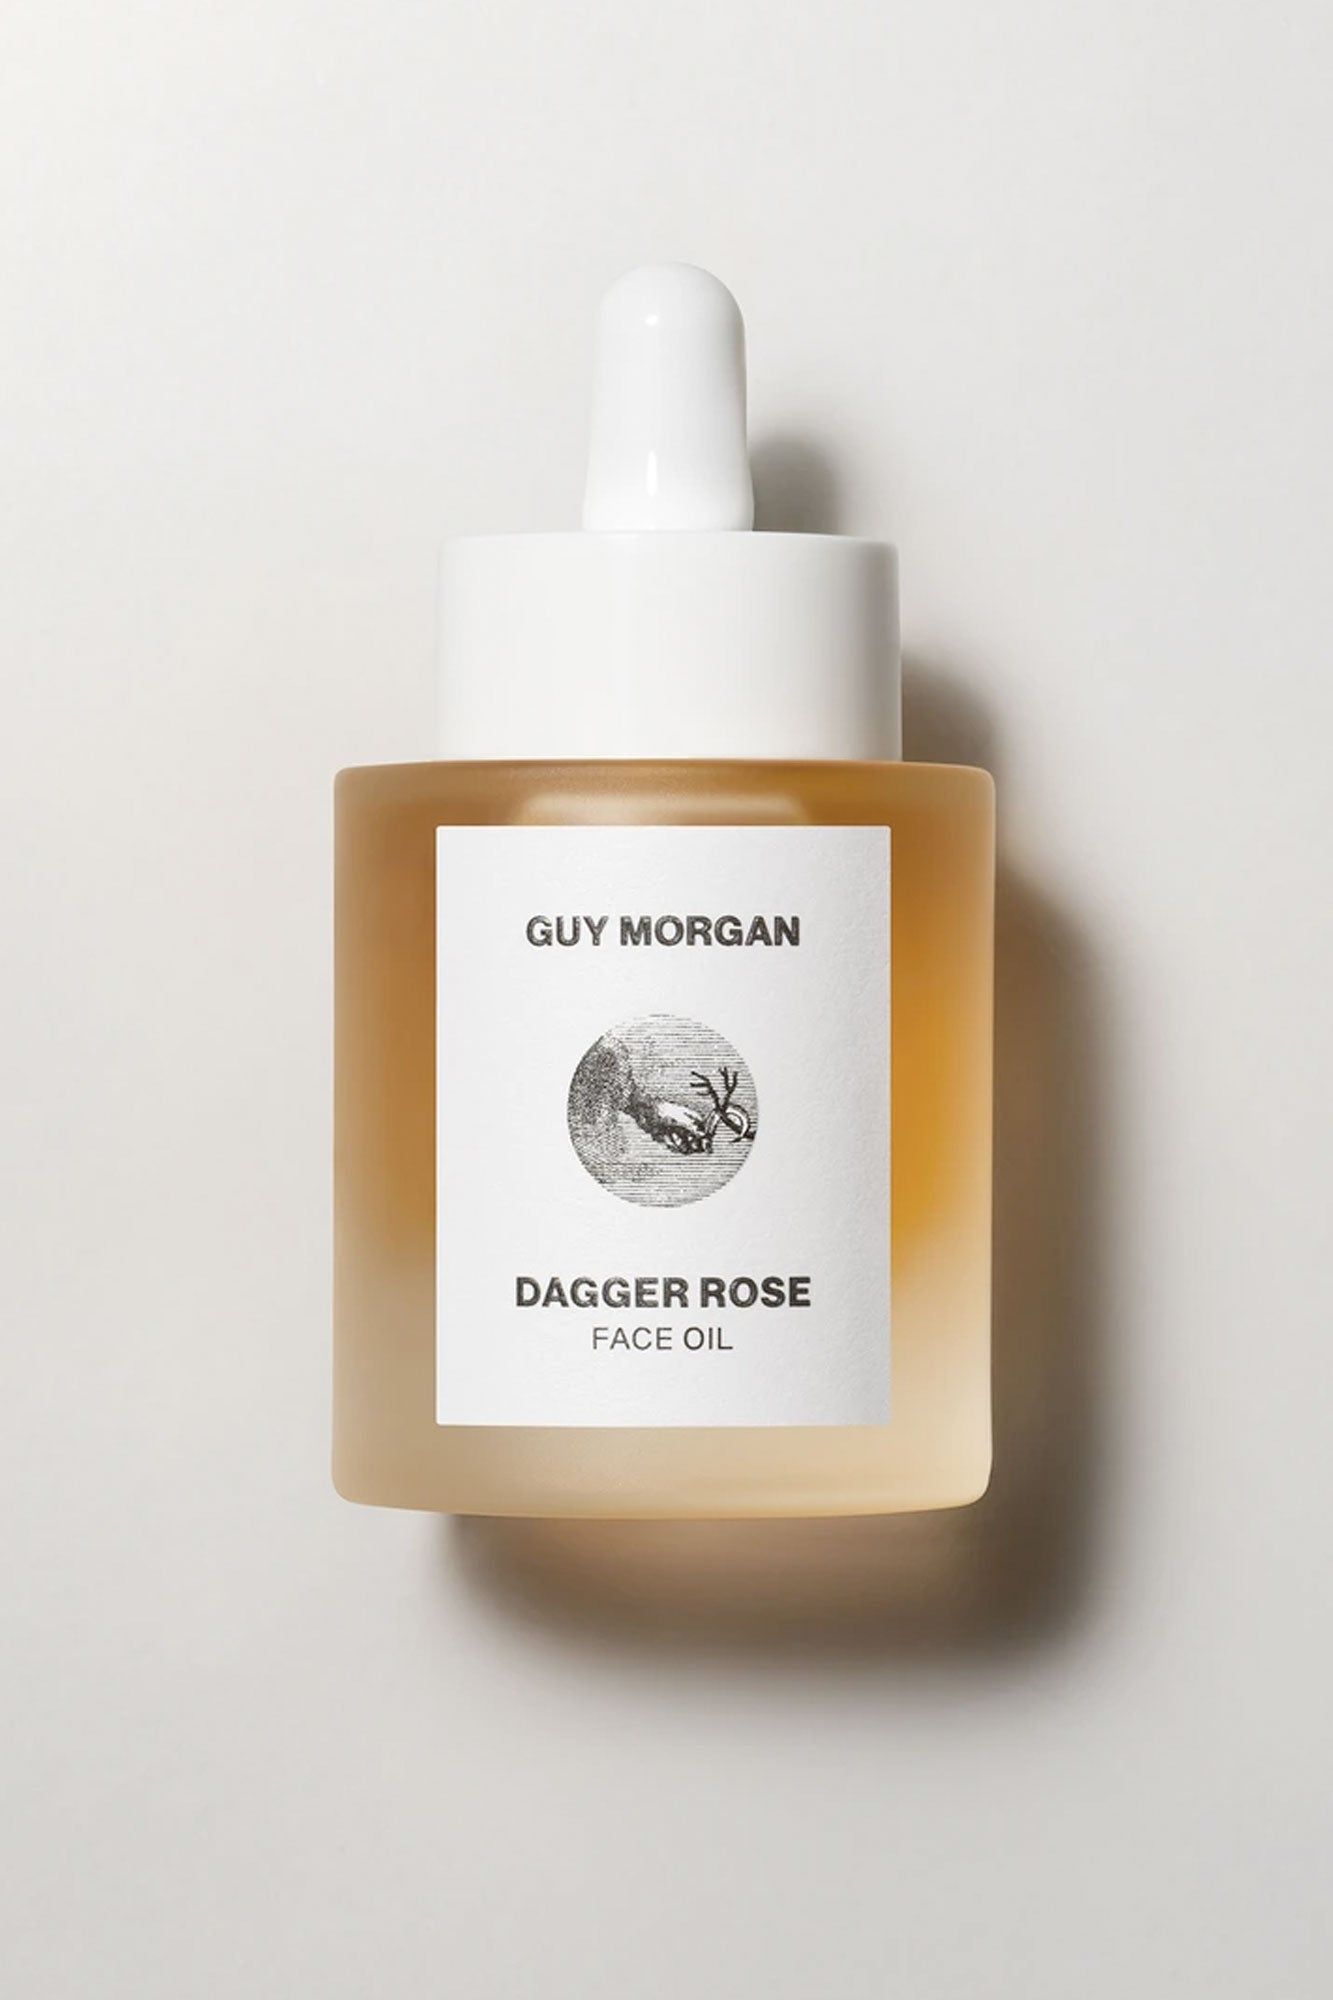 Guy Morgan Dagger Rose Face Oil